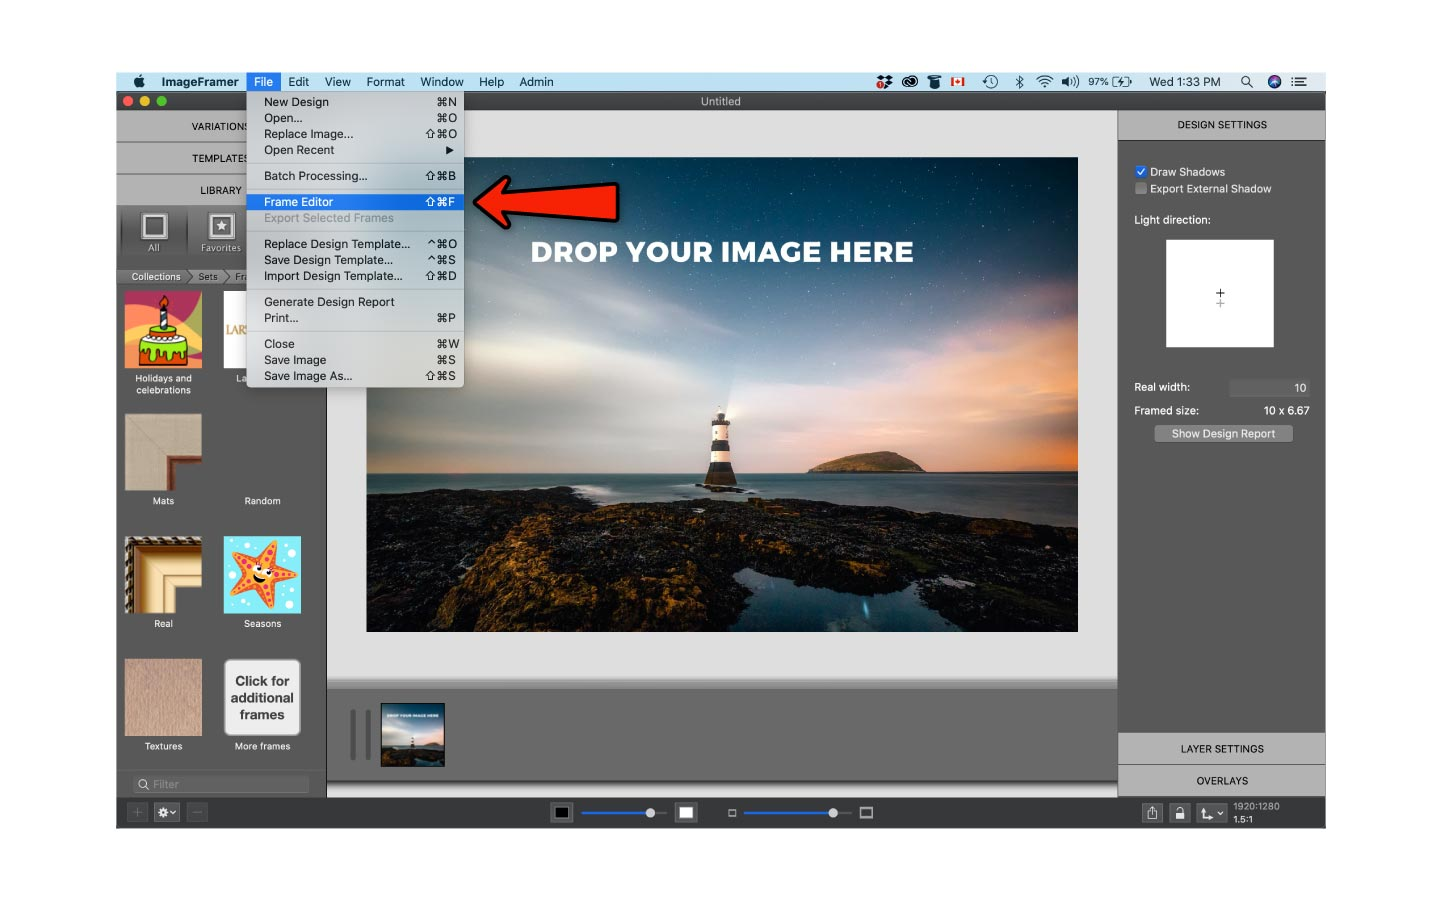 Create frame designs in ImageFramer